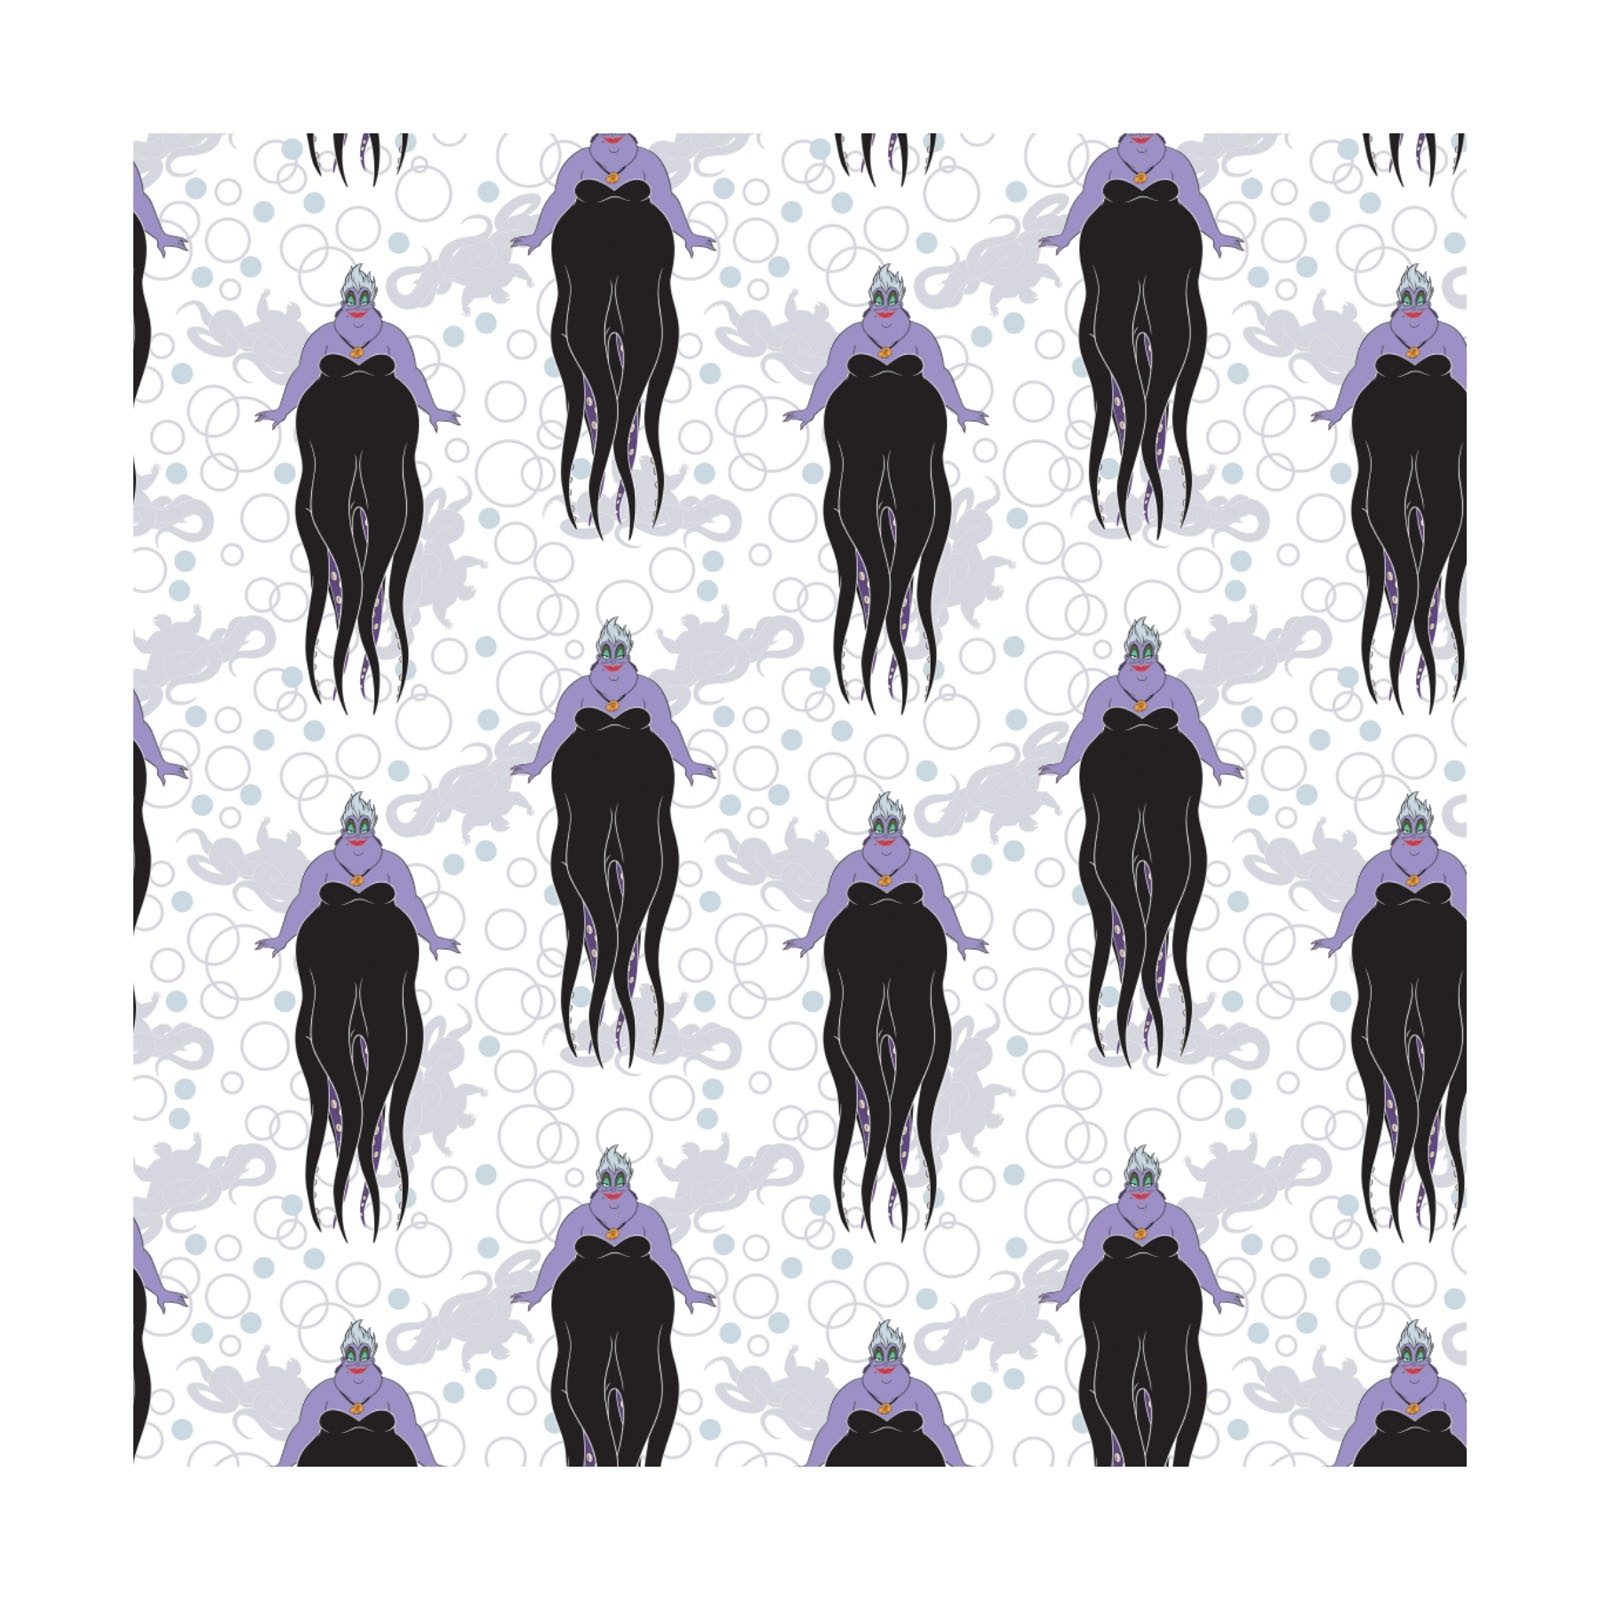 Disney Villians Ursula white background The Quilting Place 1600x1600